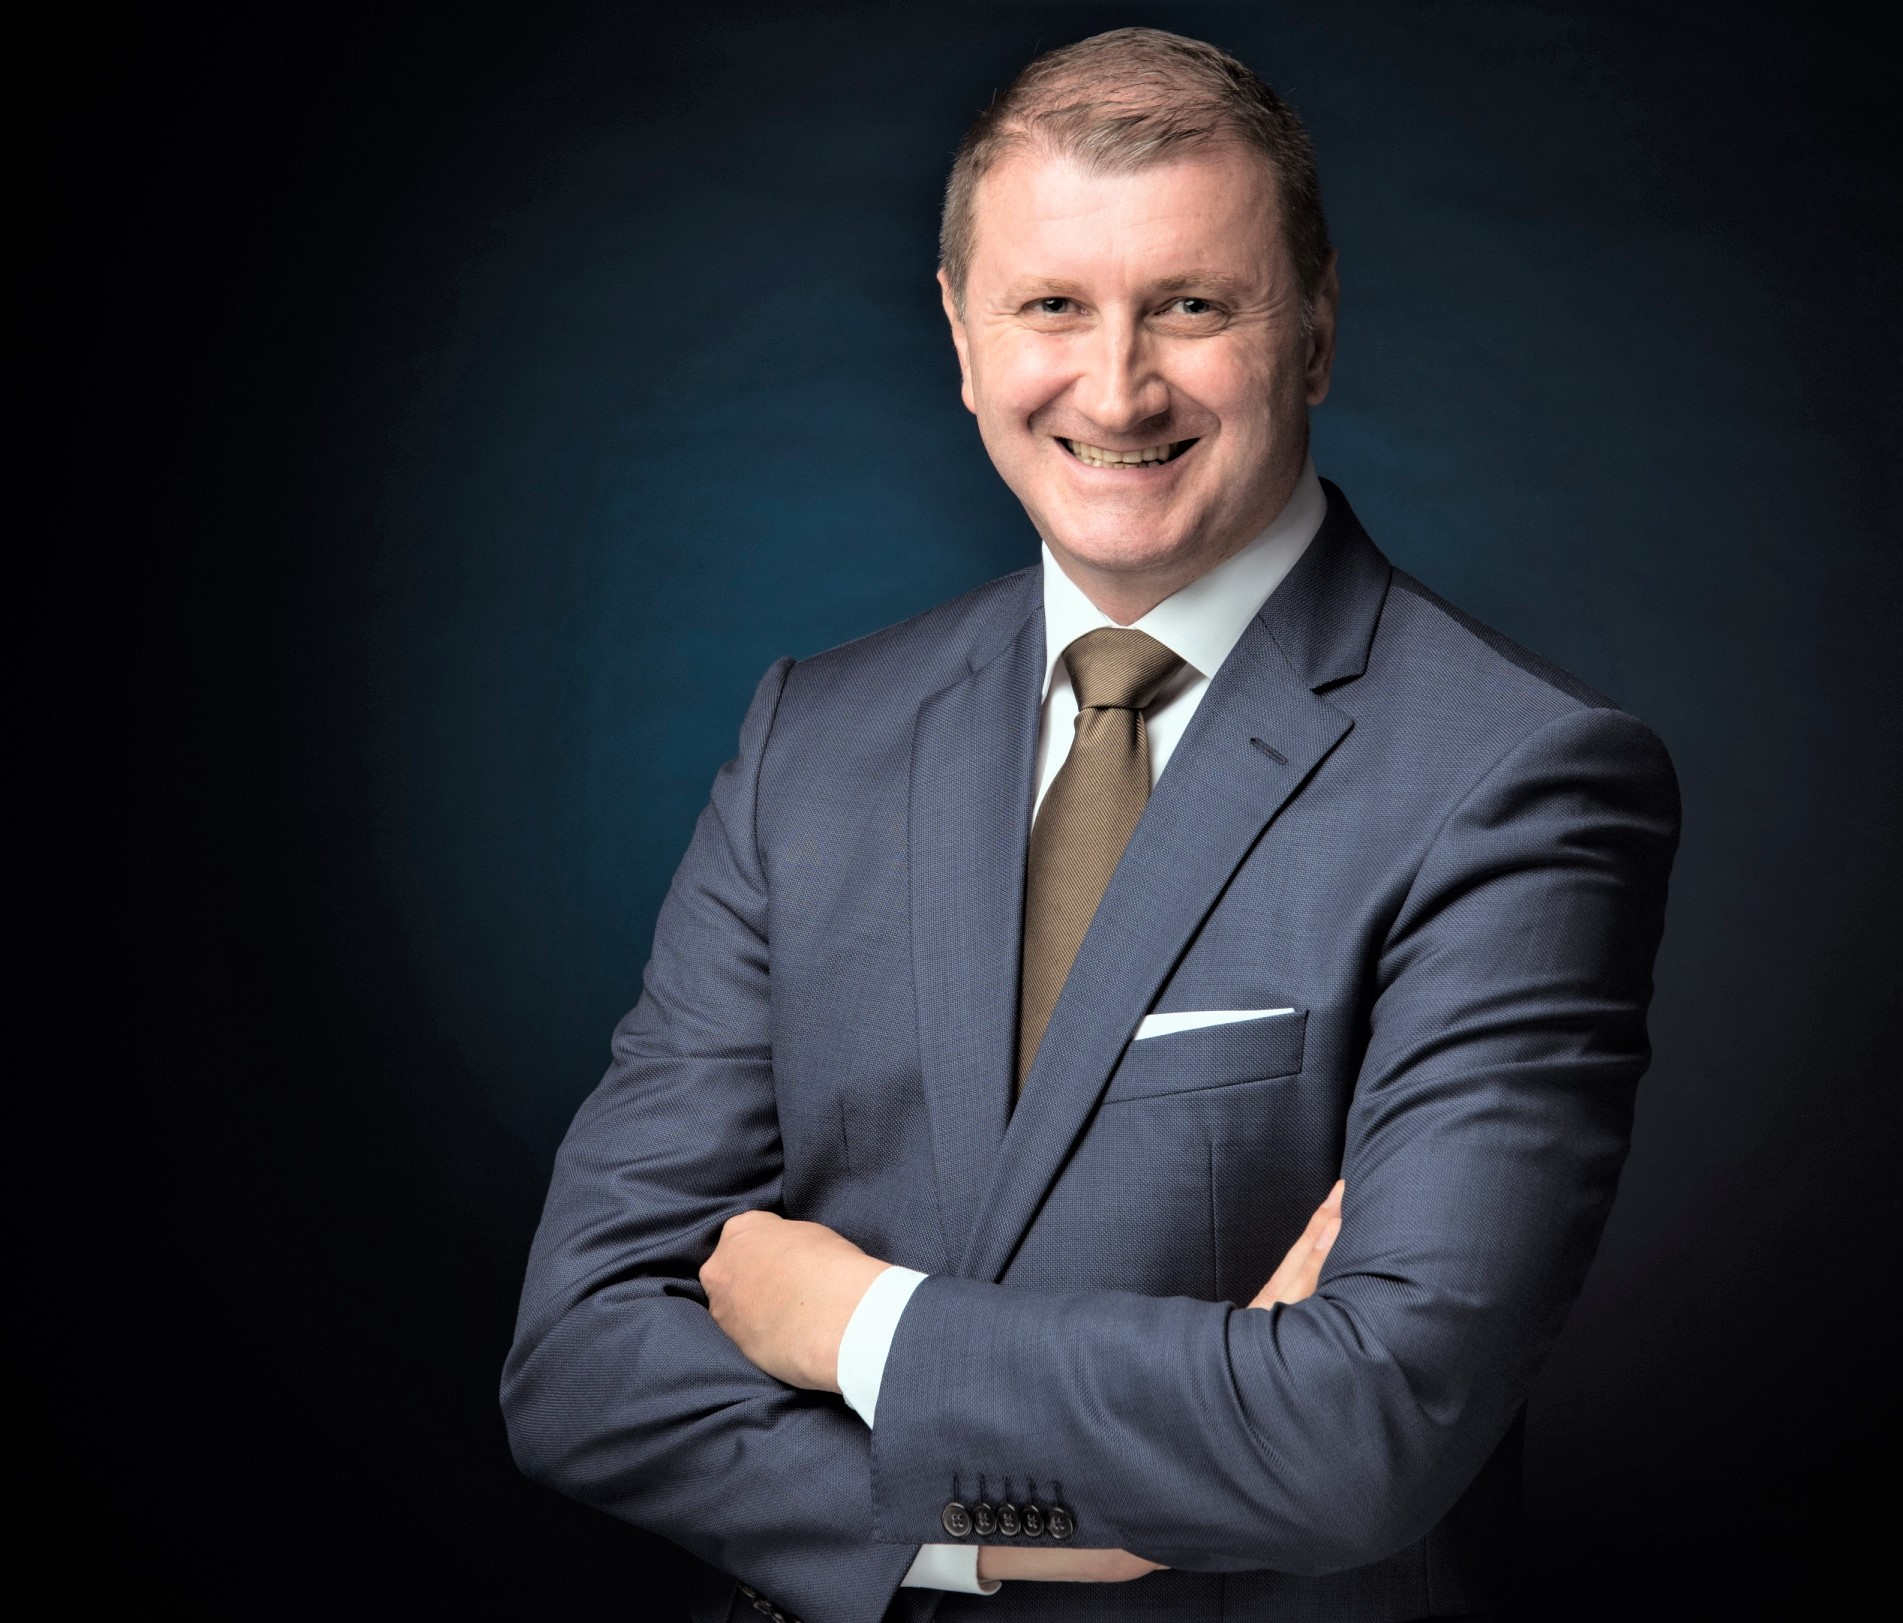 Movenpick GM says positive signals increase on daily basis  as Culligan plays key health and safety role